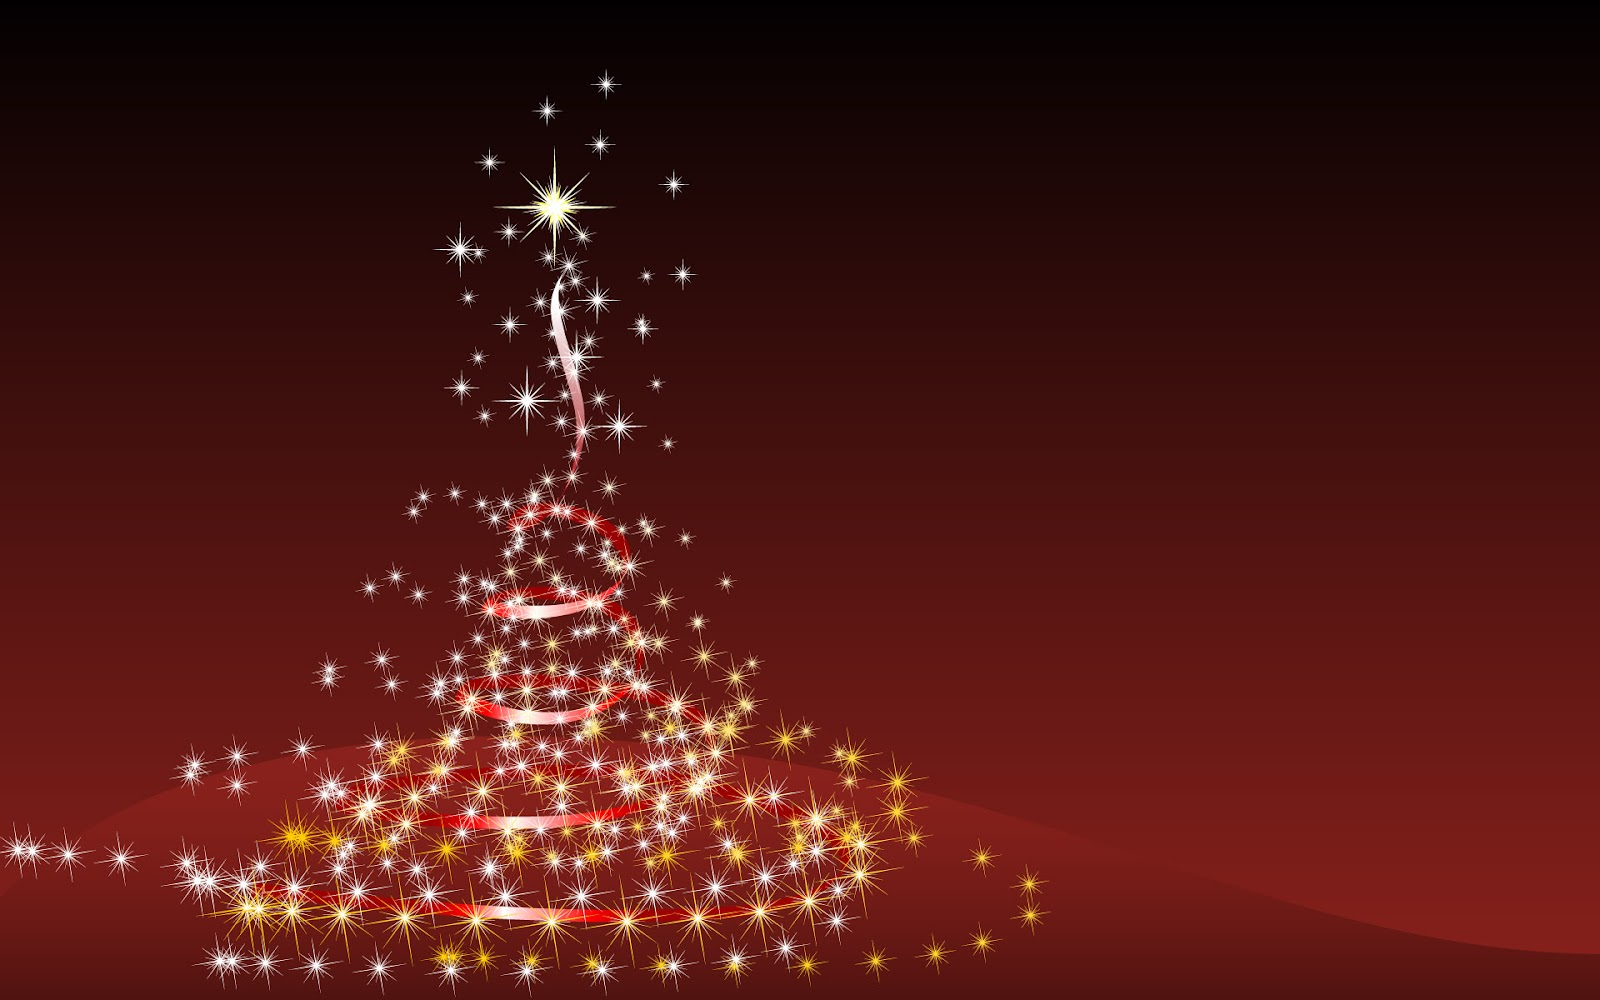 digital art christmas tree - photo #12